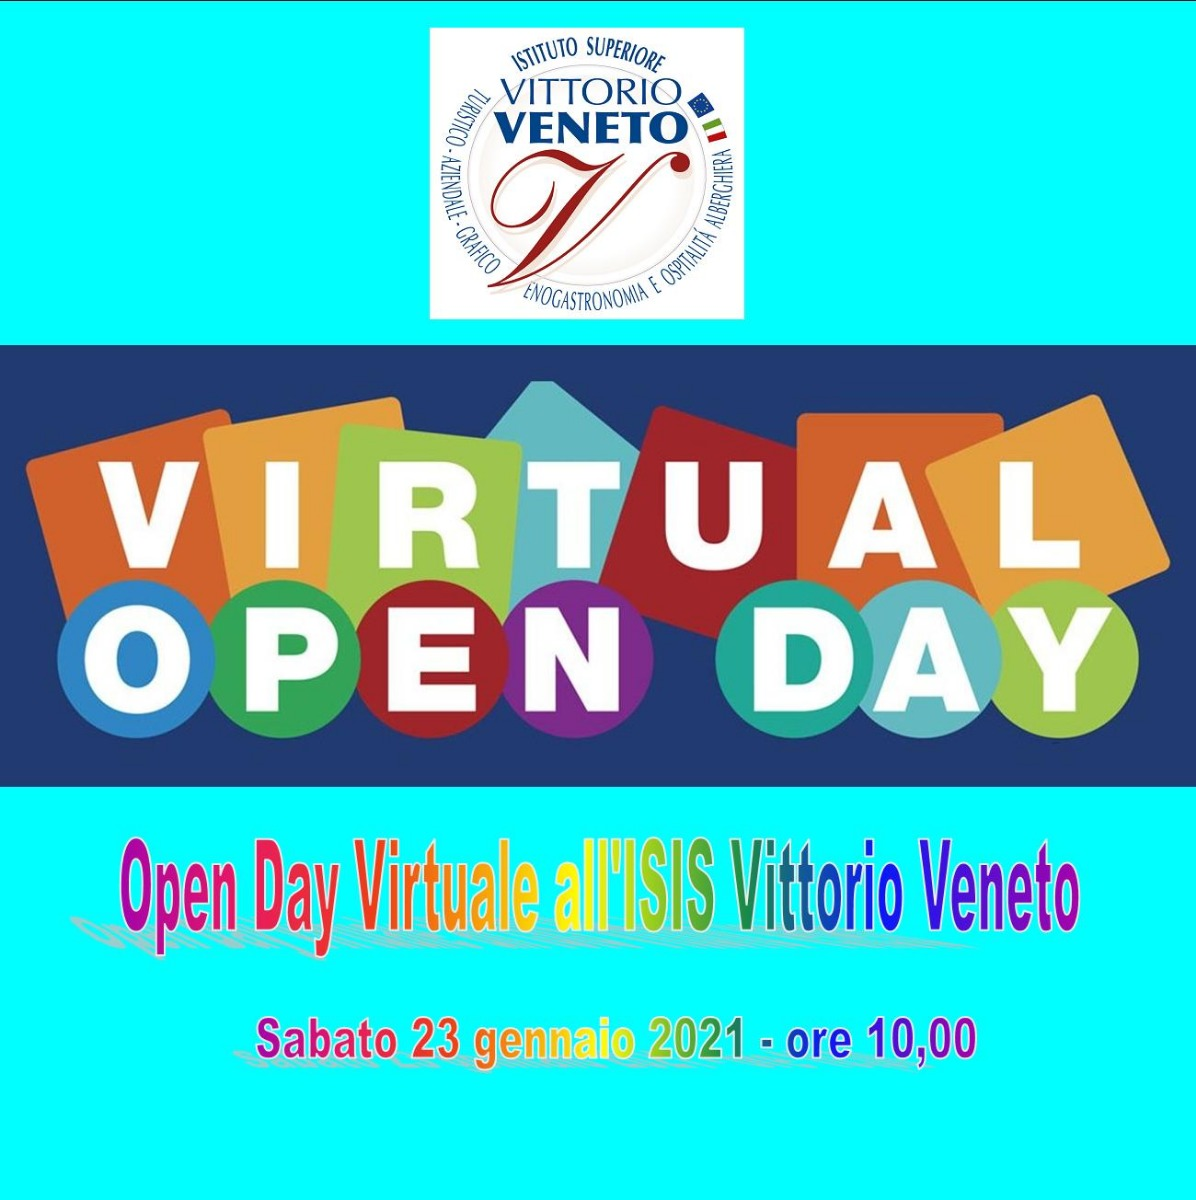 OPEN DAY VIRTUALE all'ISIS VITTORIO VENETO